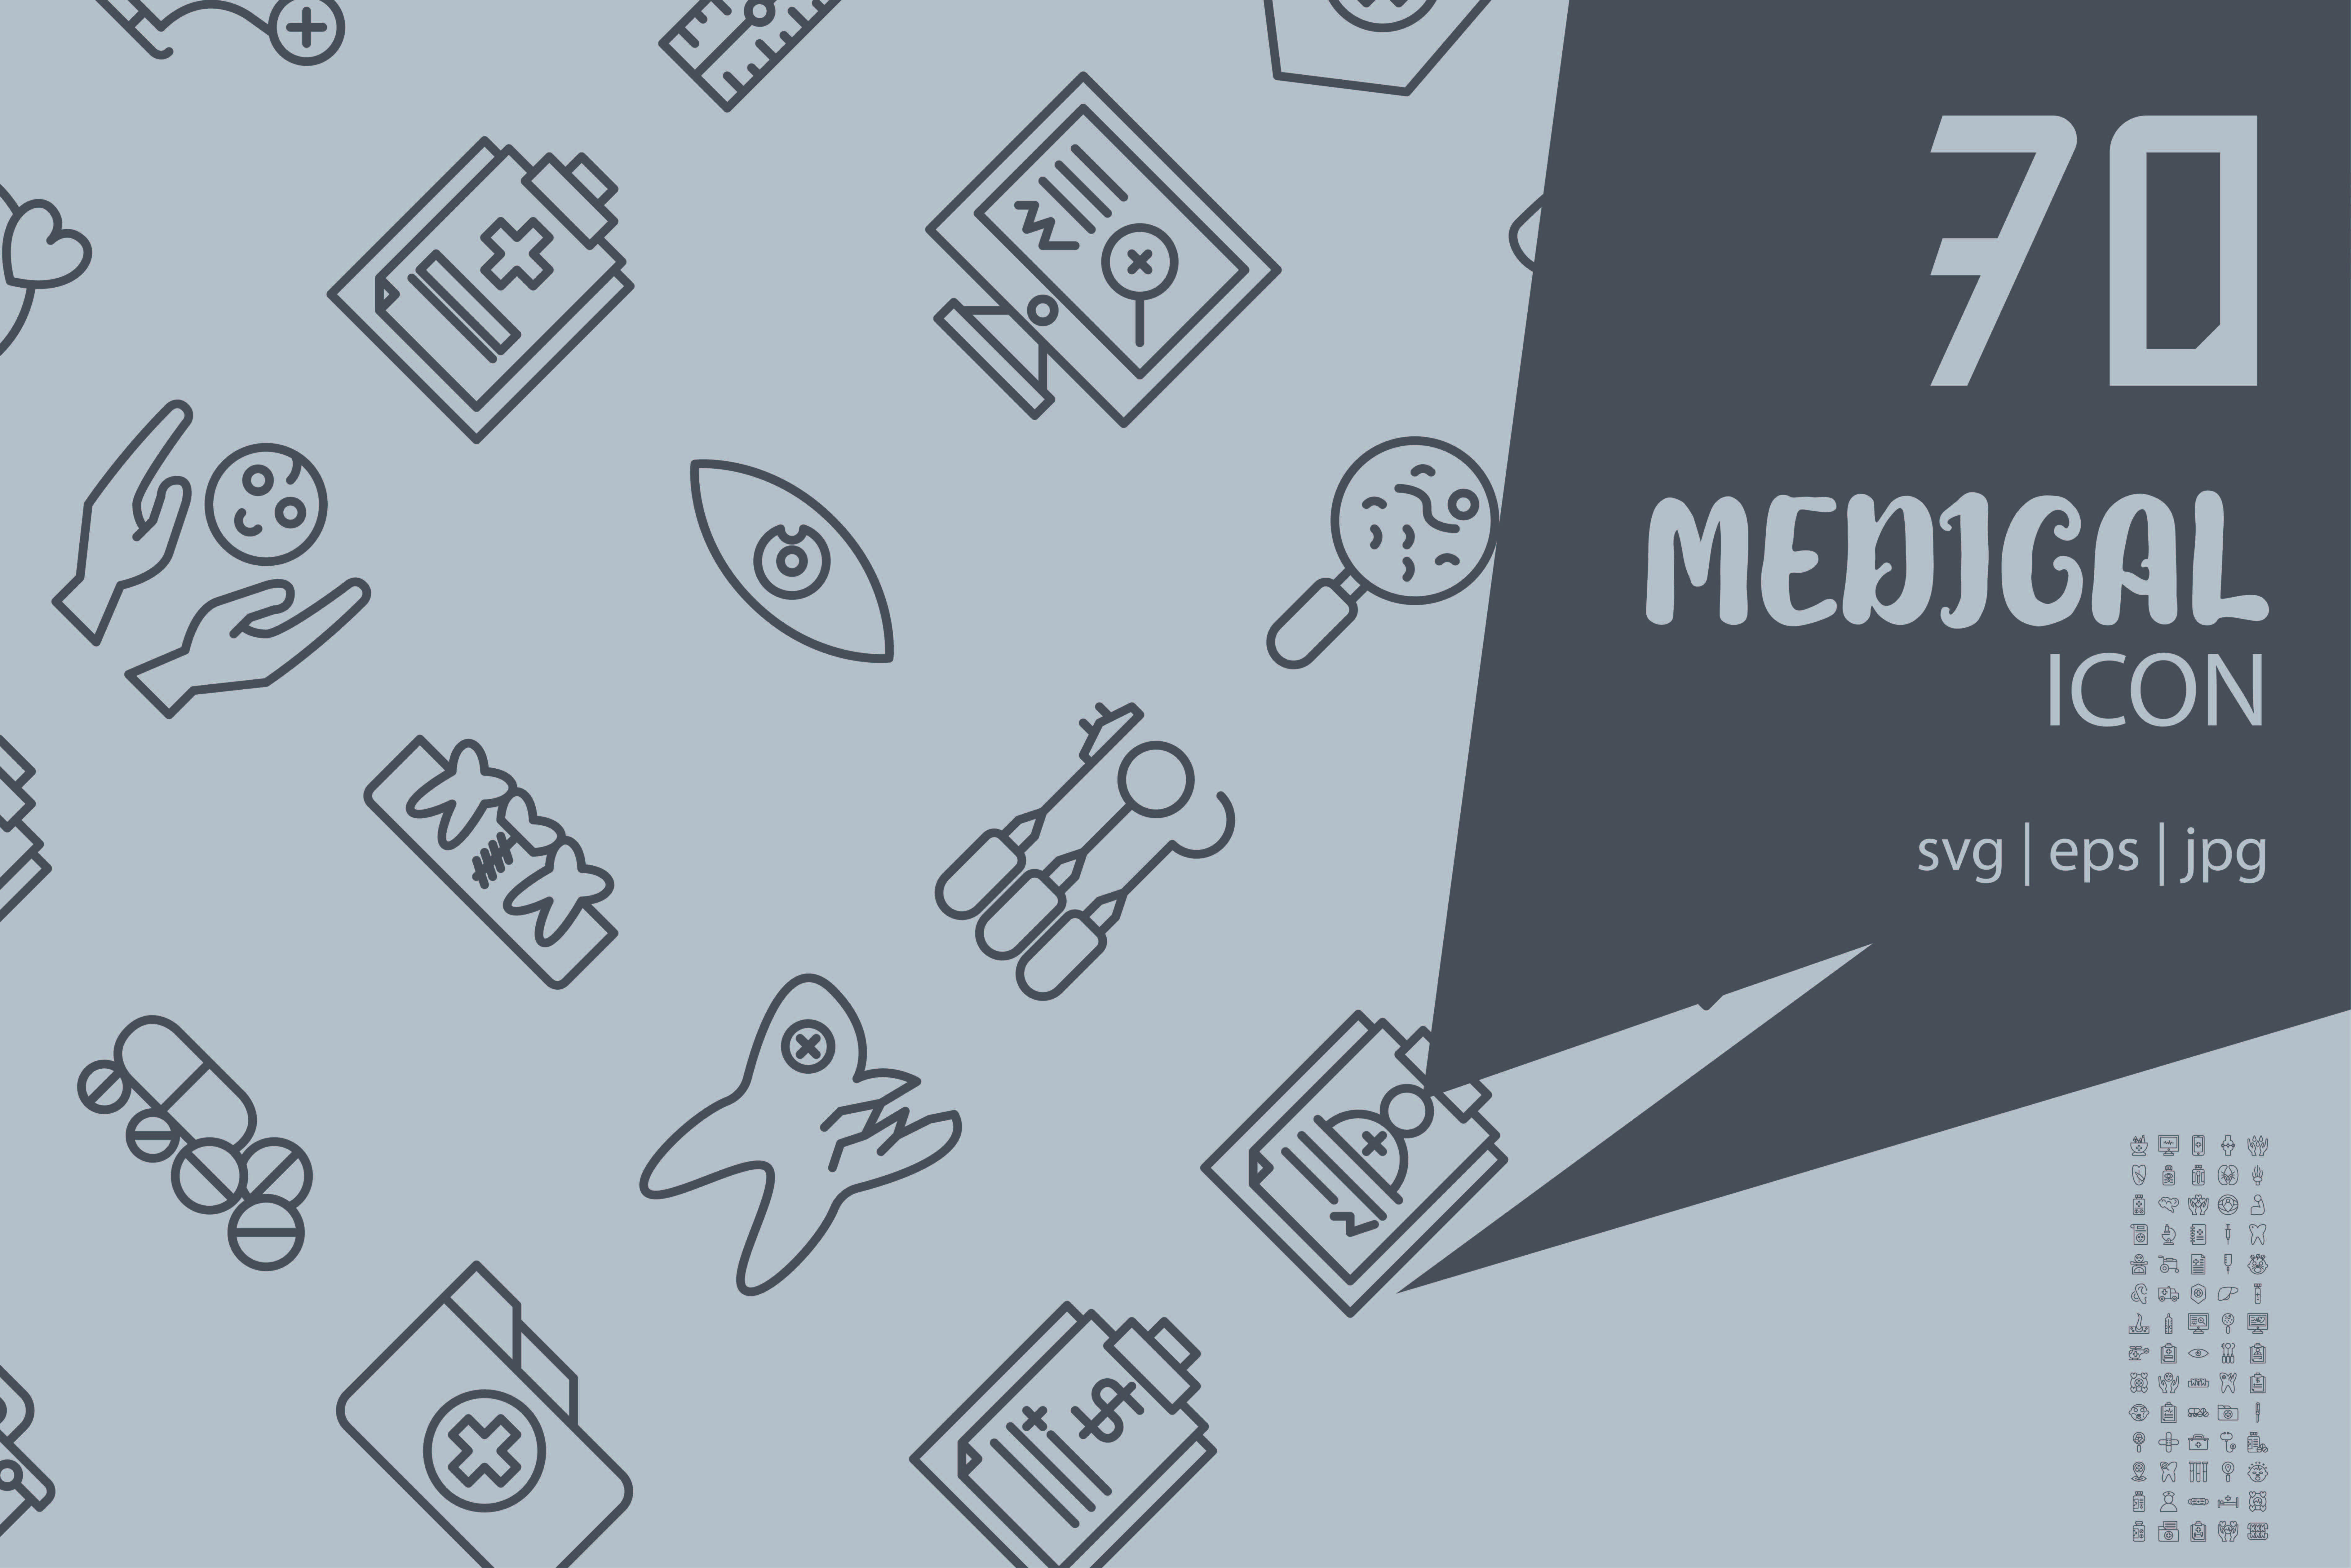 Download Free Medical Graphic By Astuti Julia92 Creative Fabrica for Cricut Explore, Silhouette and other cutting machines.